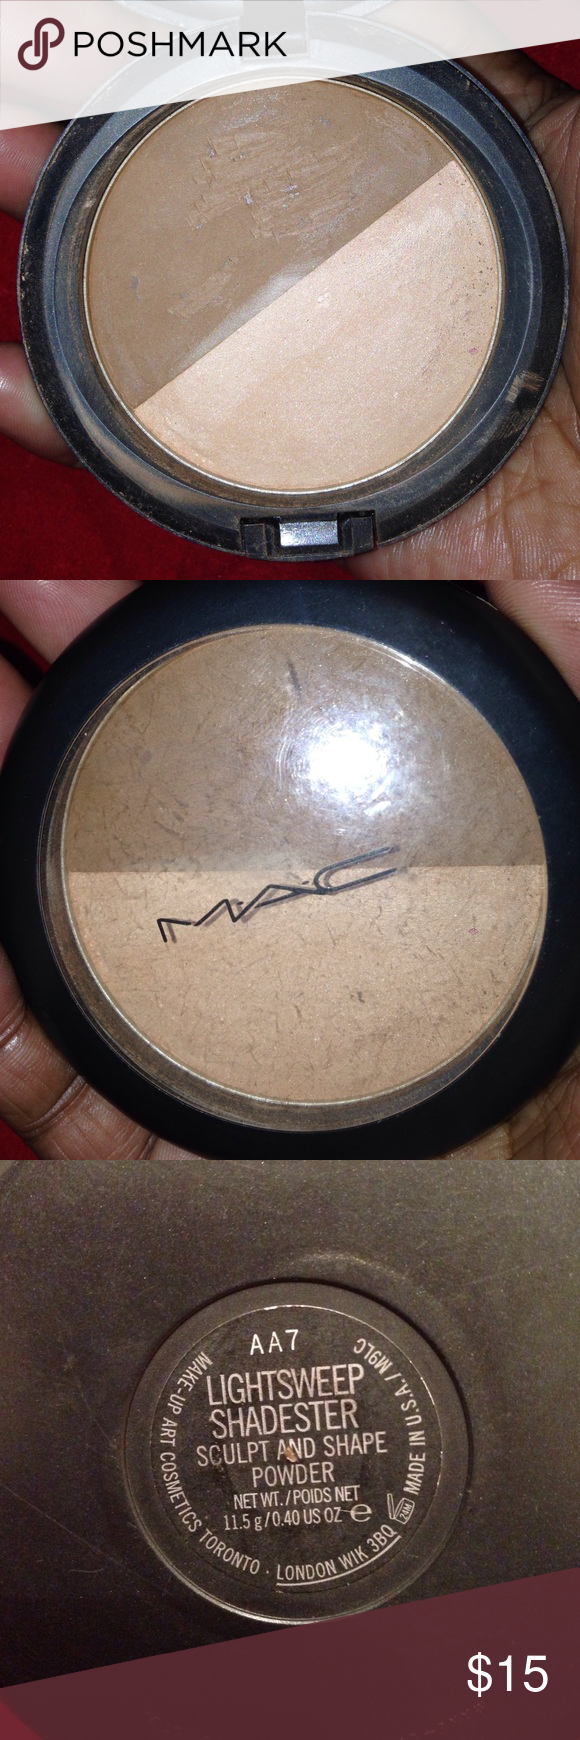 Mac Sculpt & Shape Powder Lightsweep Shadester DIS Mac Sculpt & Shape Powder  Lightsweep/Shadester DISCONTINUED    A powder that combines a highlighting and contouring shade in one pan. 70% left   Too light for me now MAC Cosmetics Makeup Face Powder